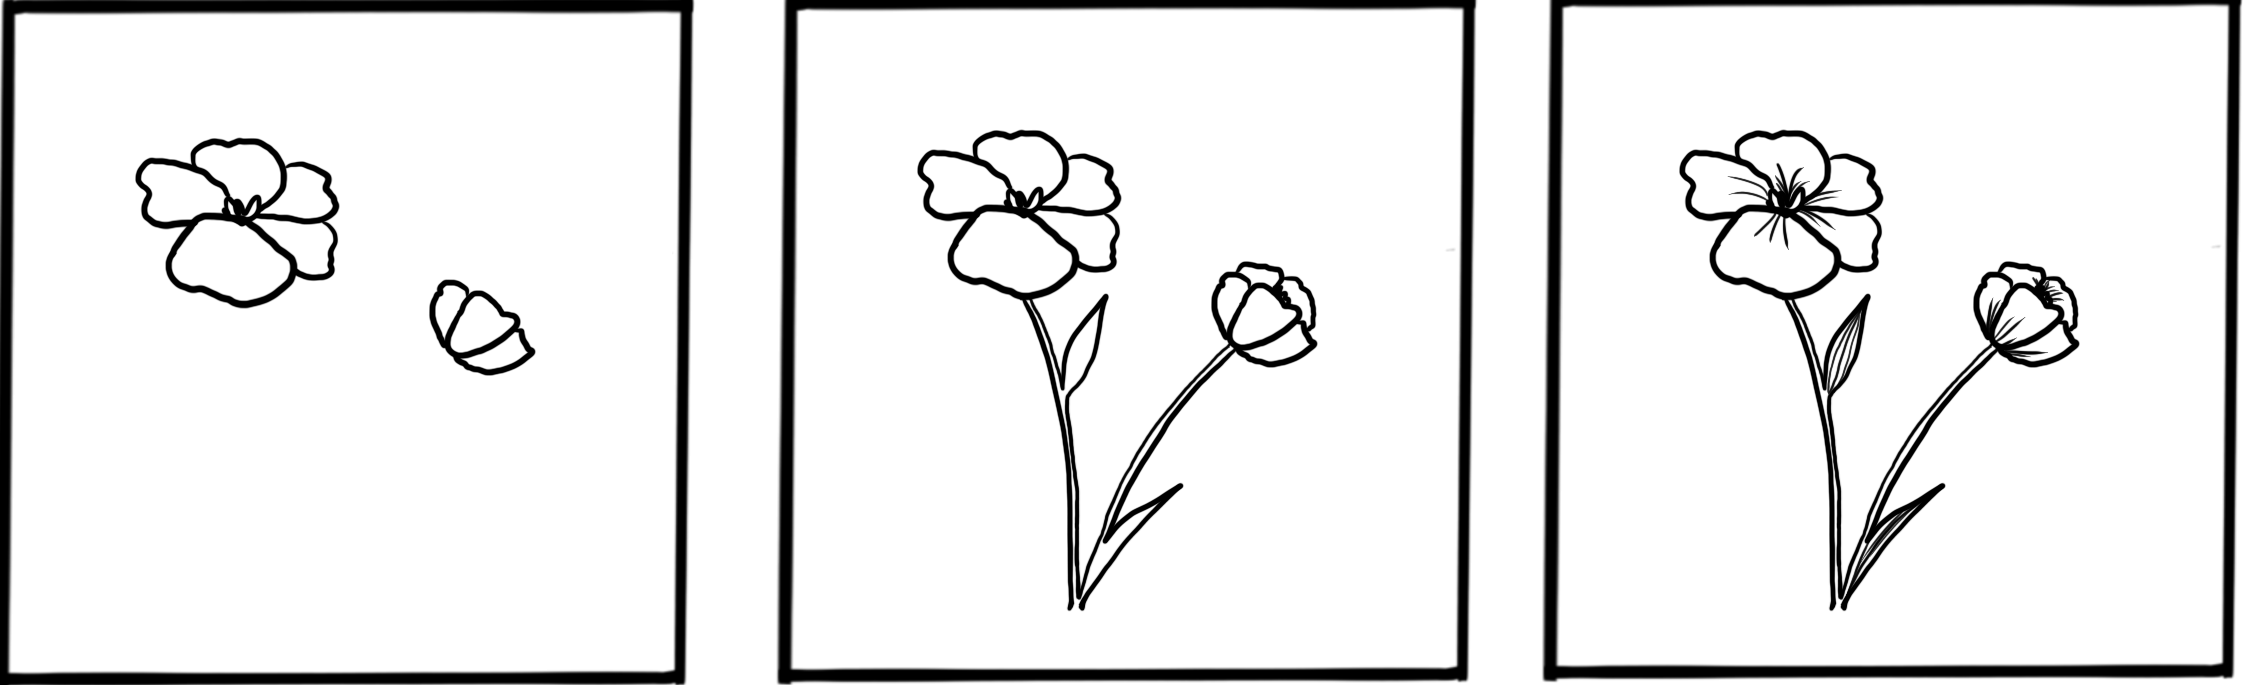 how to draw a winter primrose flower